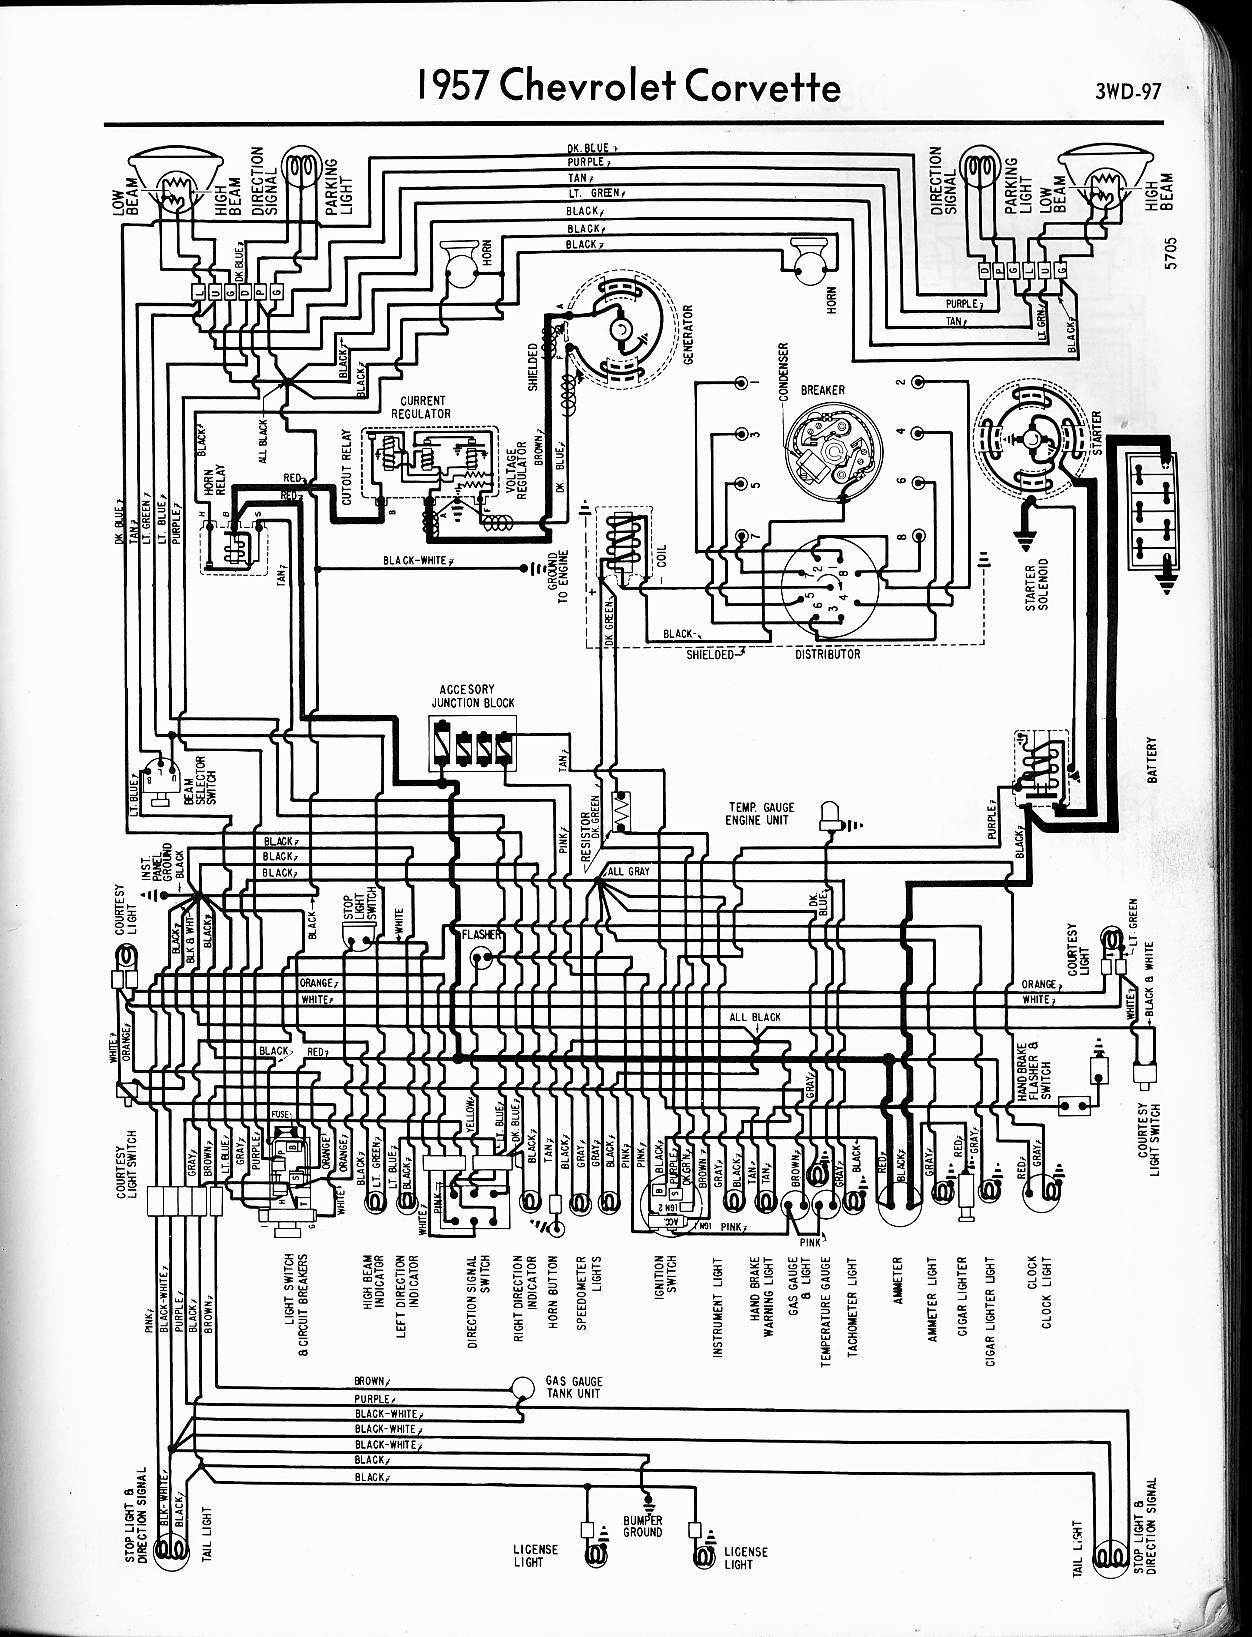 1955 chevy fuse box diagram catalogue of schemas chevy color laminated wiring diagram